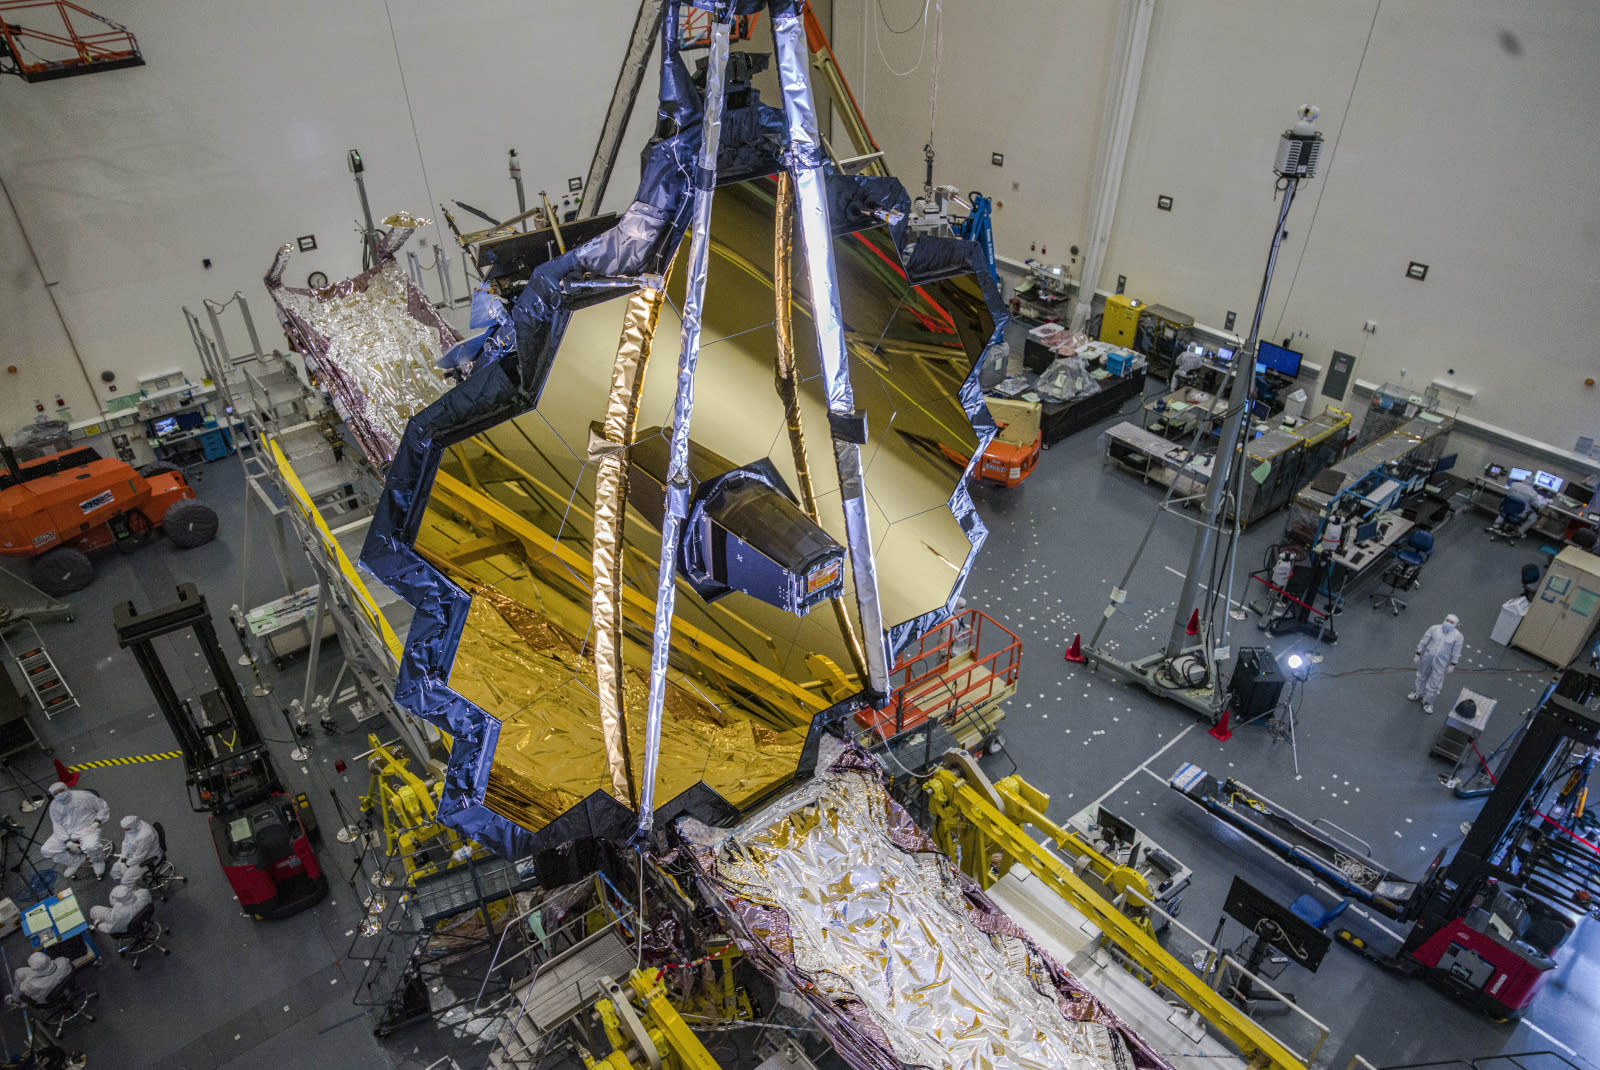 NASA delays James Webb Space Telescope launch until October 2021 | Engadget